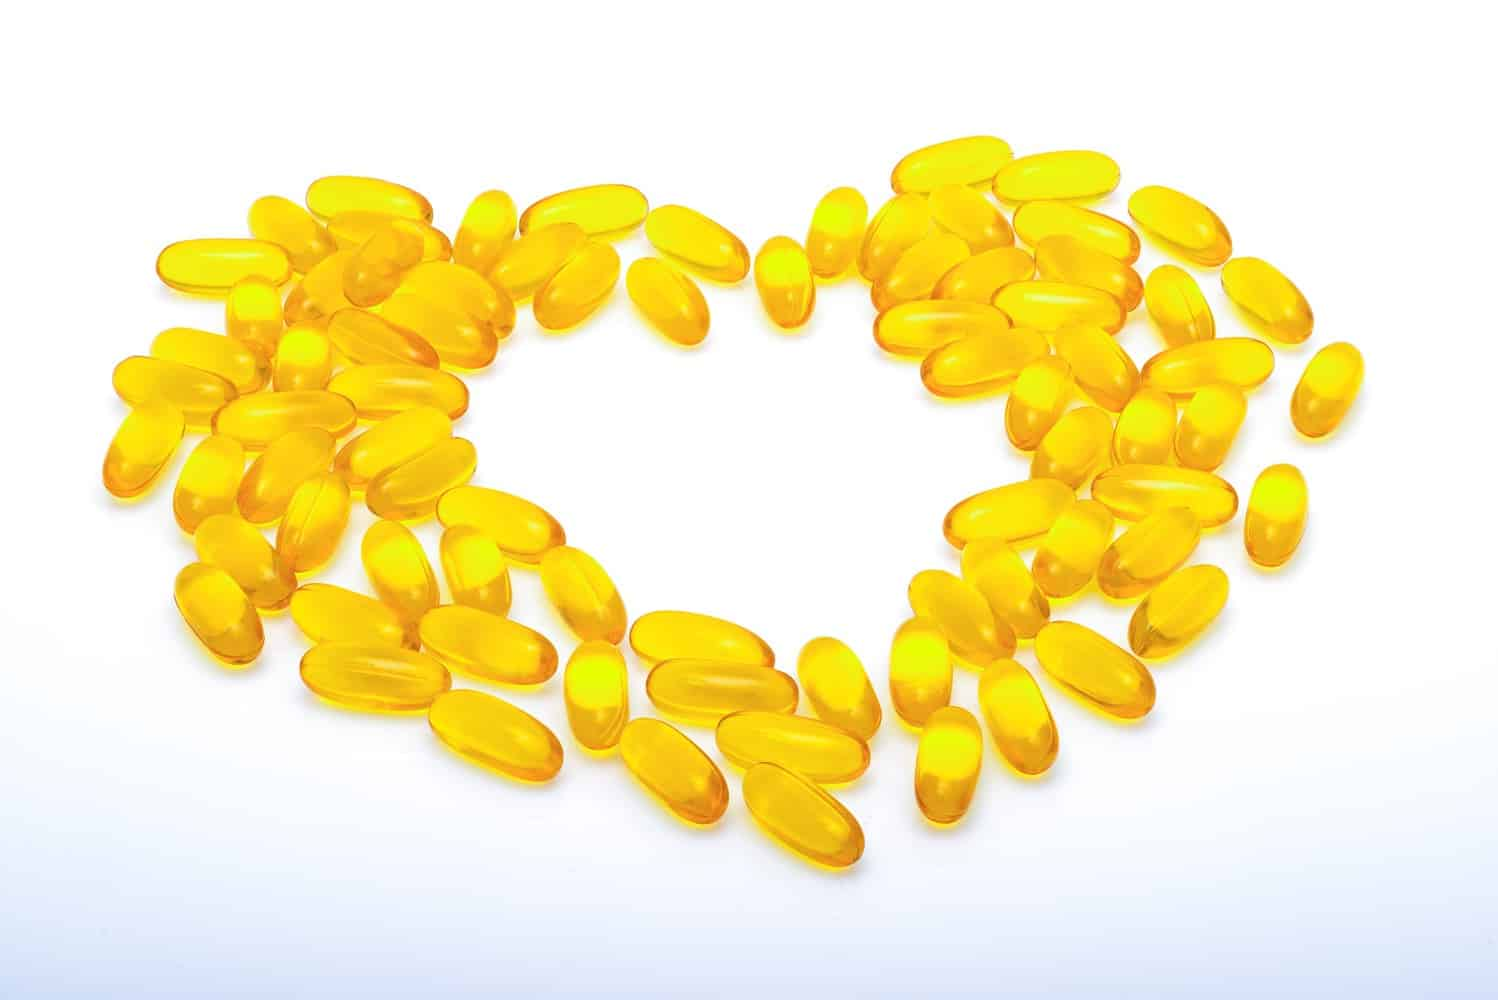 Fish oil capsules forming the shape of a heart.